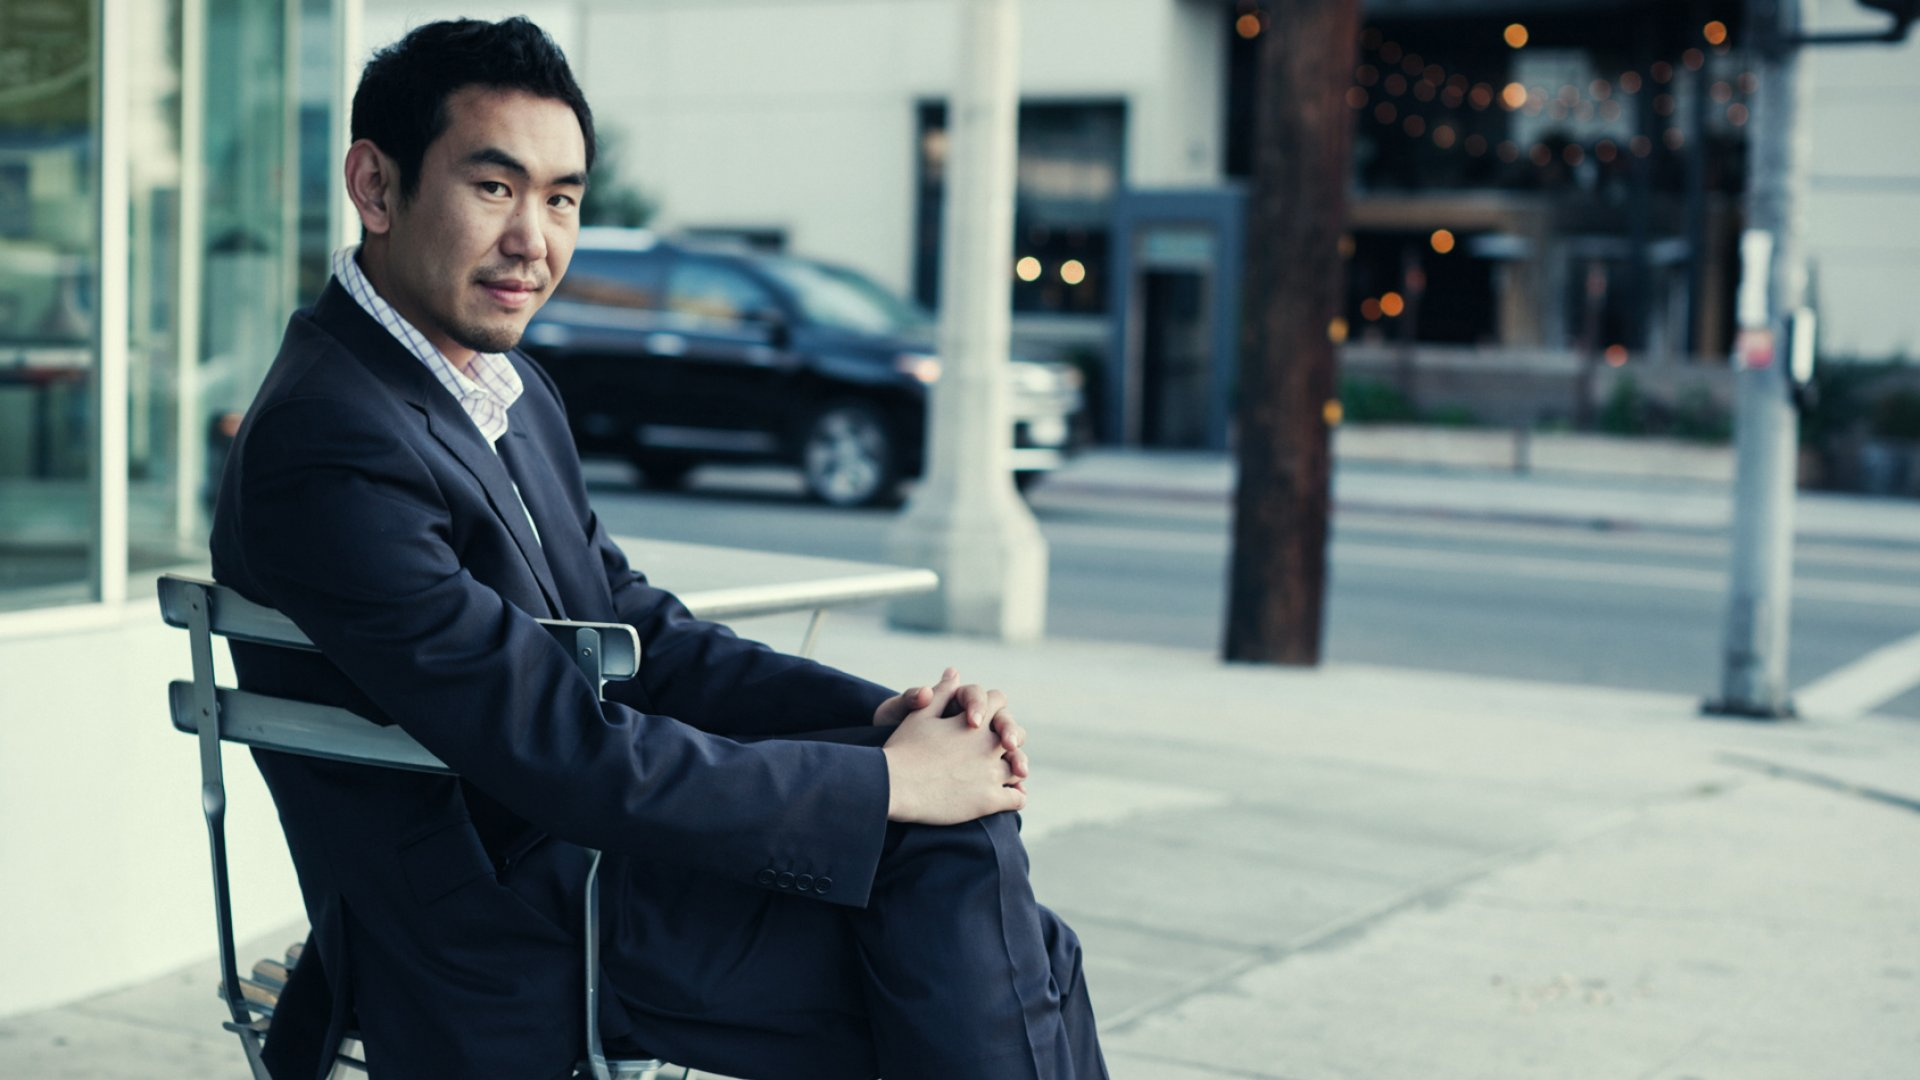 Leonard Kim, managing partner at InfluenceTree, a personal branding accelerator.